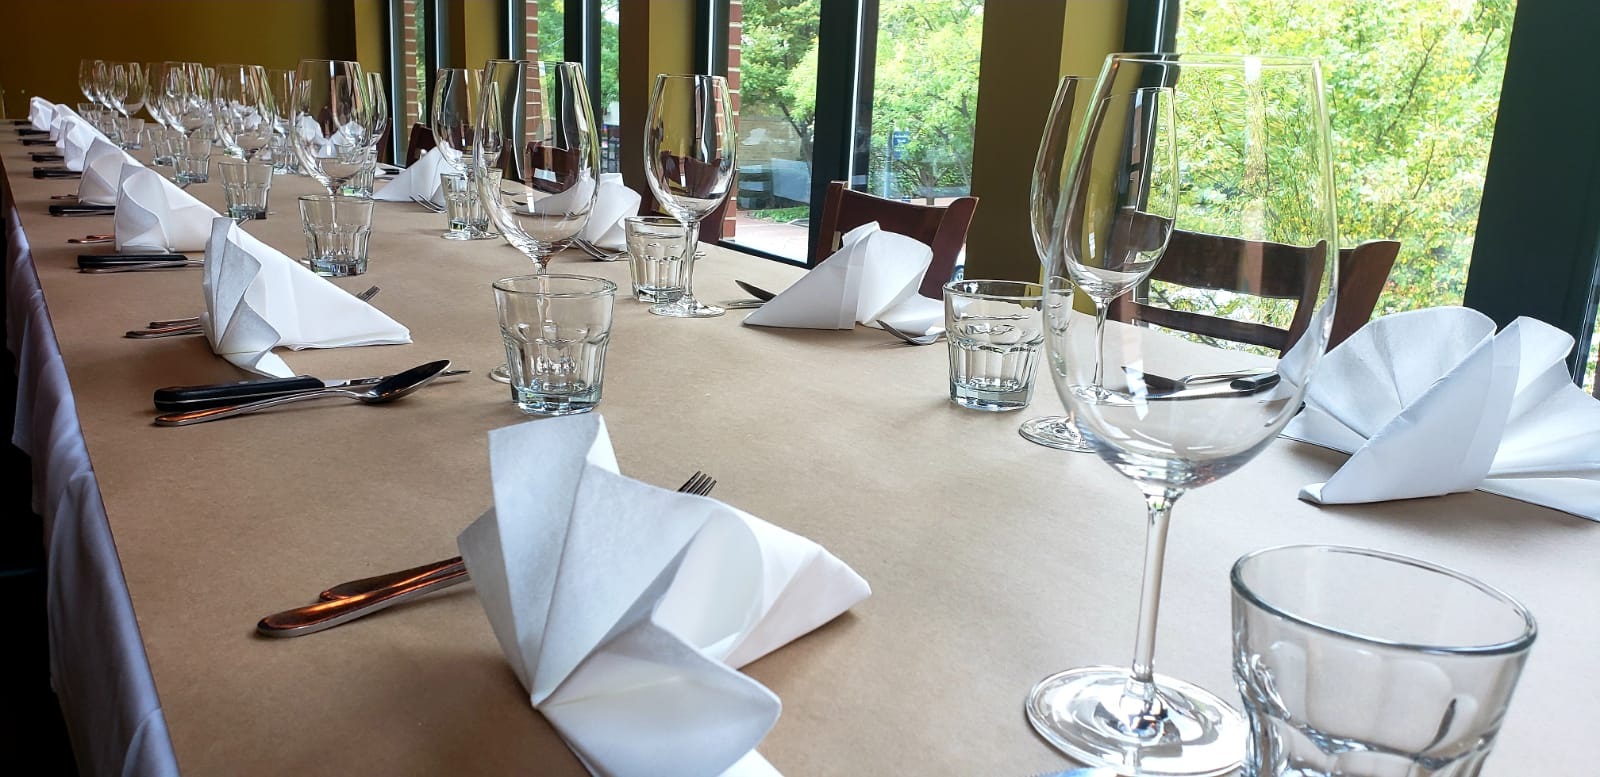 table setting of wine glasses and cutlery